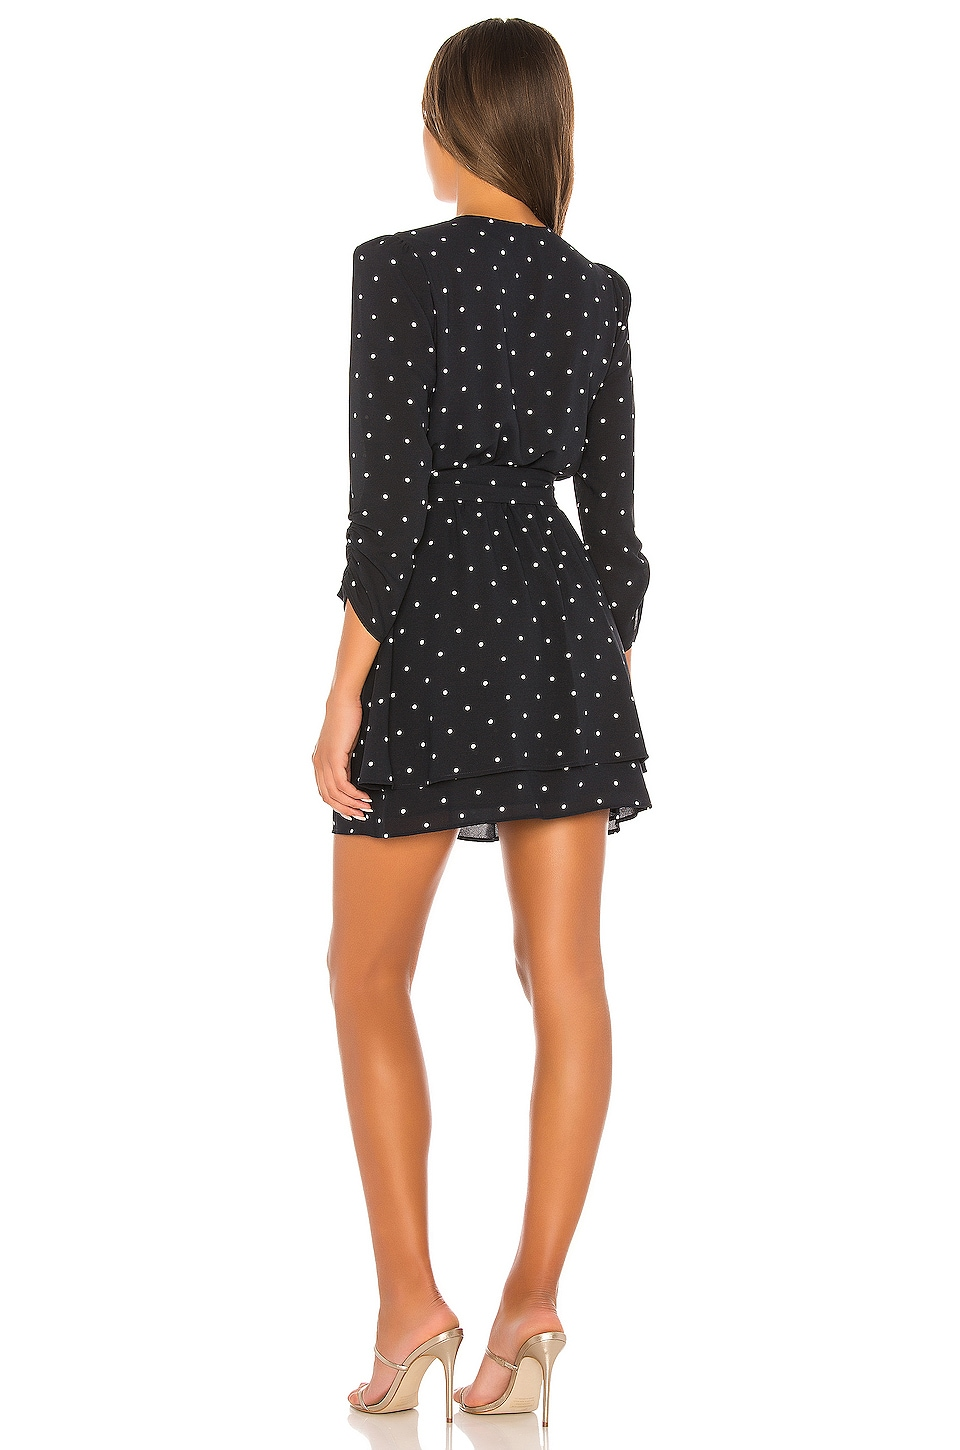 Tie Waist Moonlit Polka Dot Dress, view 3, click to view large image.